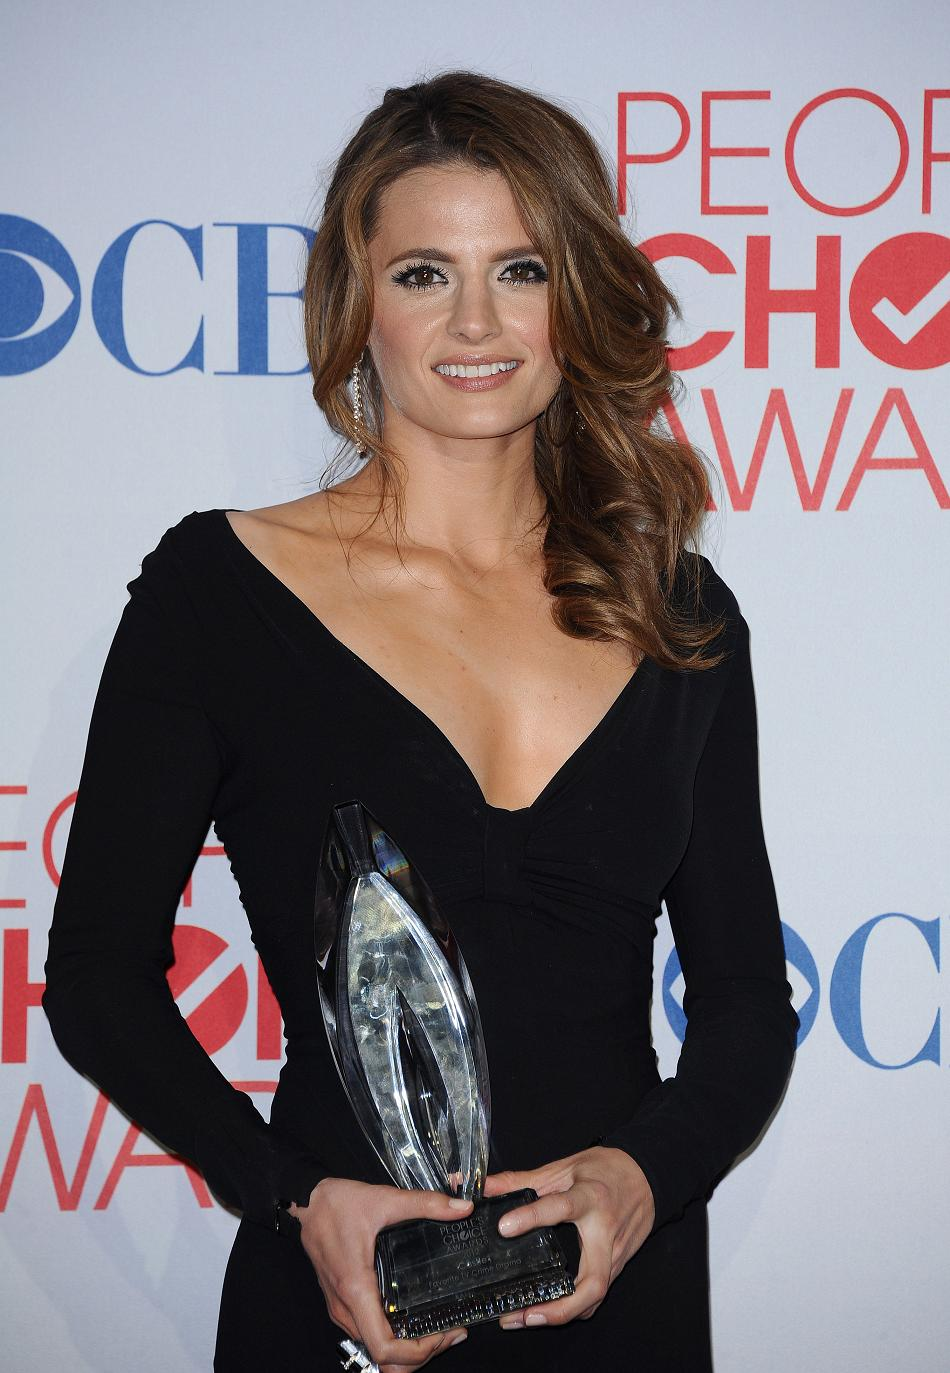 stana people choice